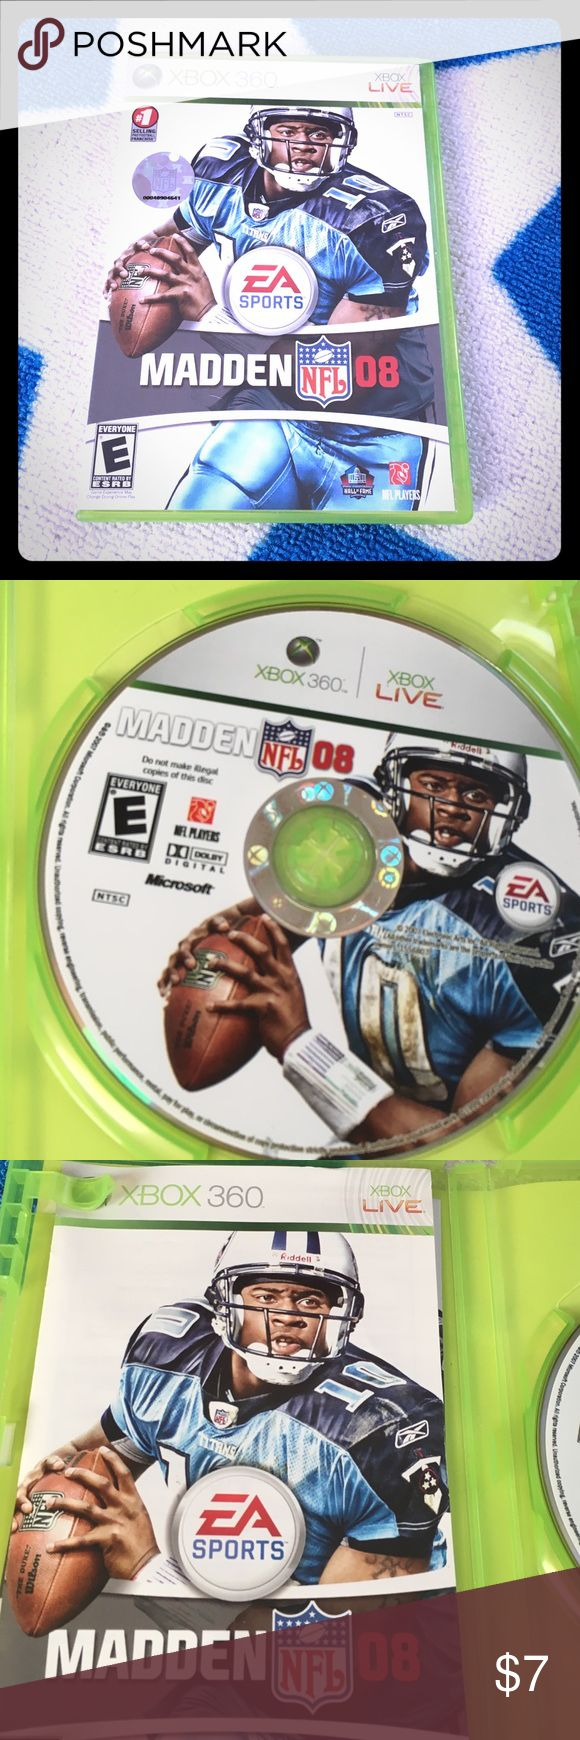 Madden 08 NFL Xbox 360 Can connect to Xbox live Xbox 360 Other